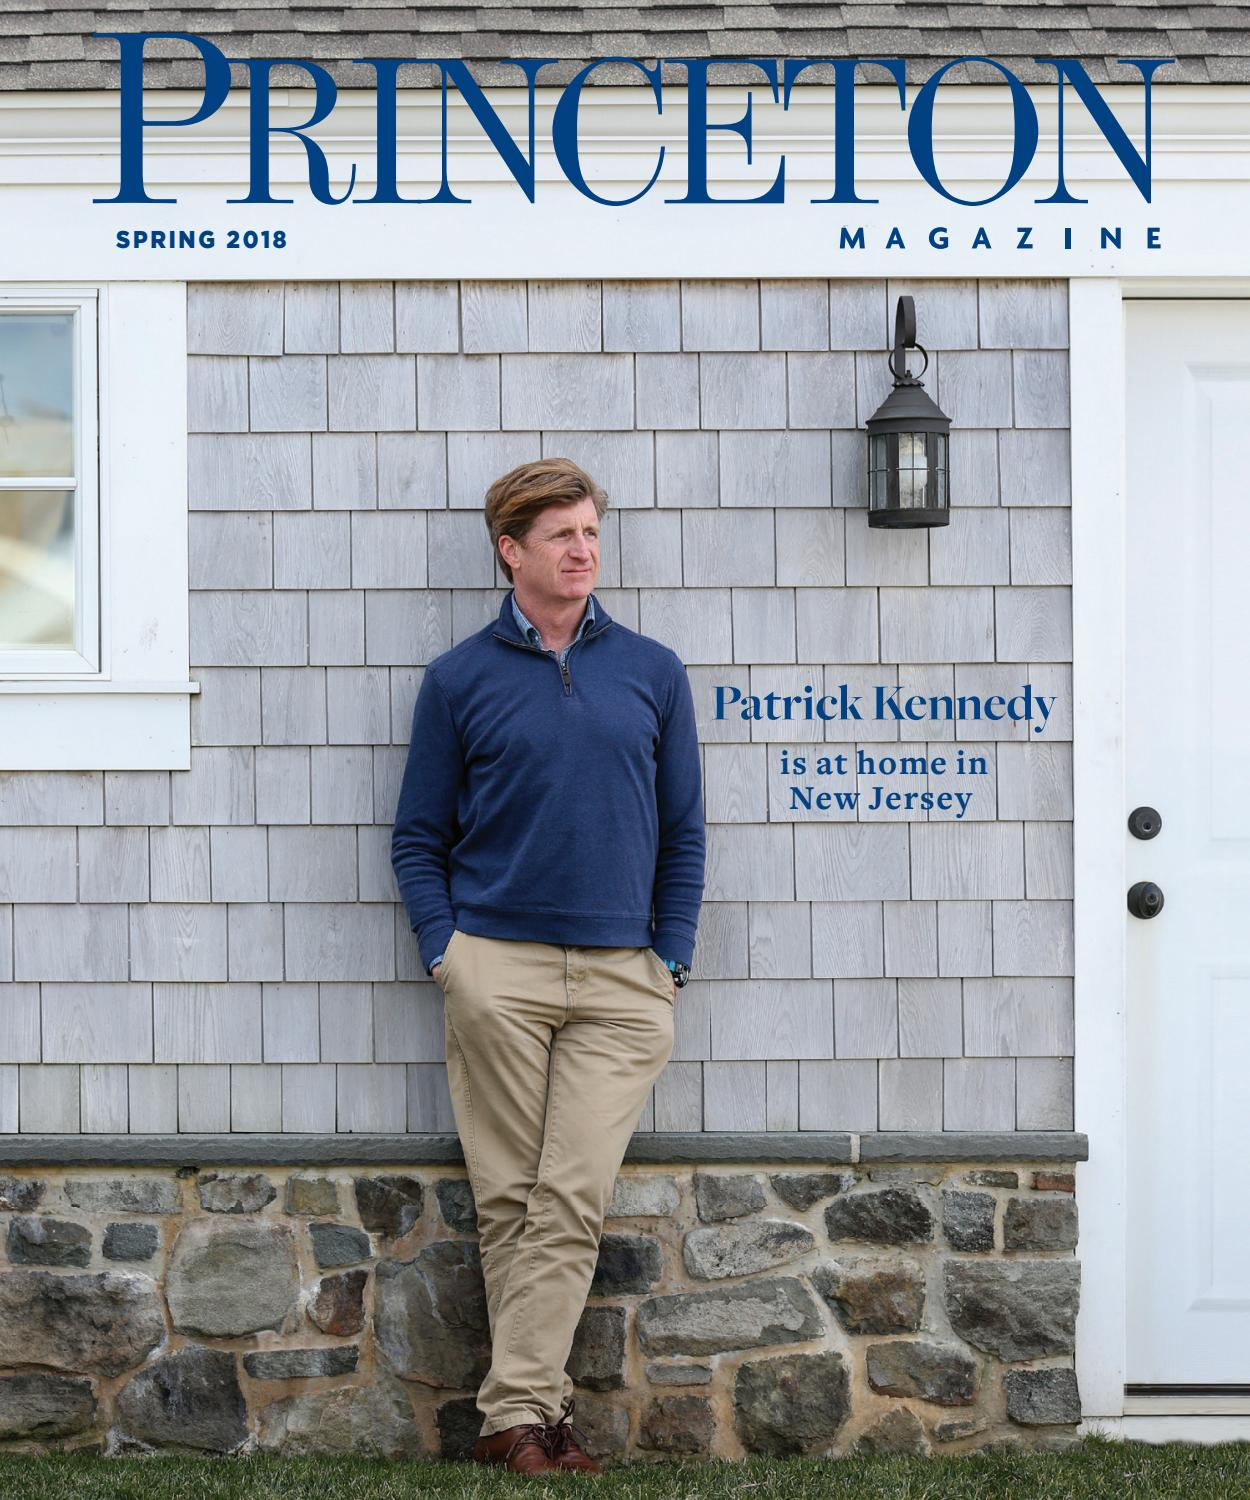 Princeton Magazine, Spring 2018 by Witherspoon Media Group